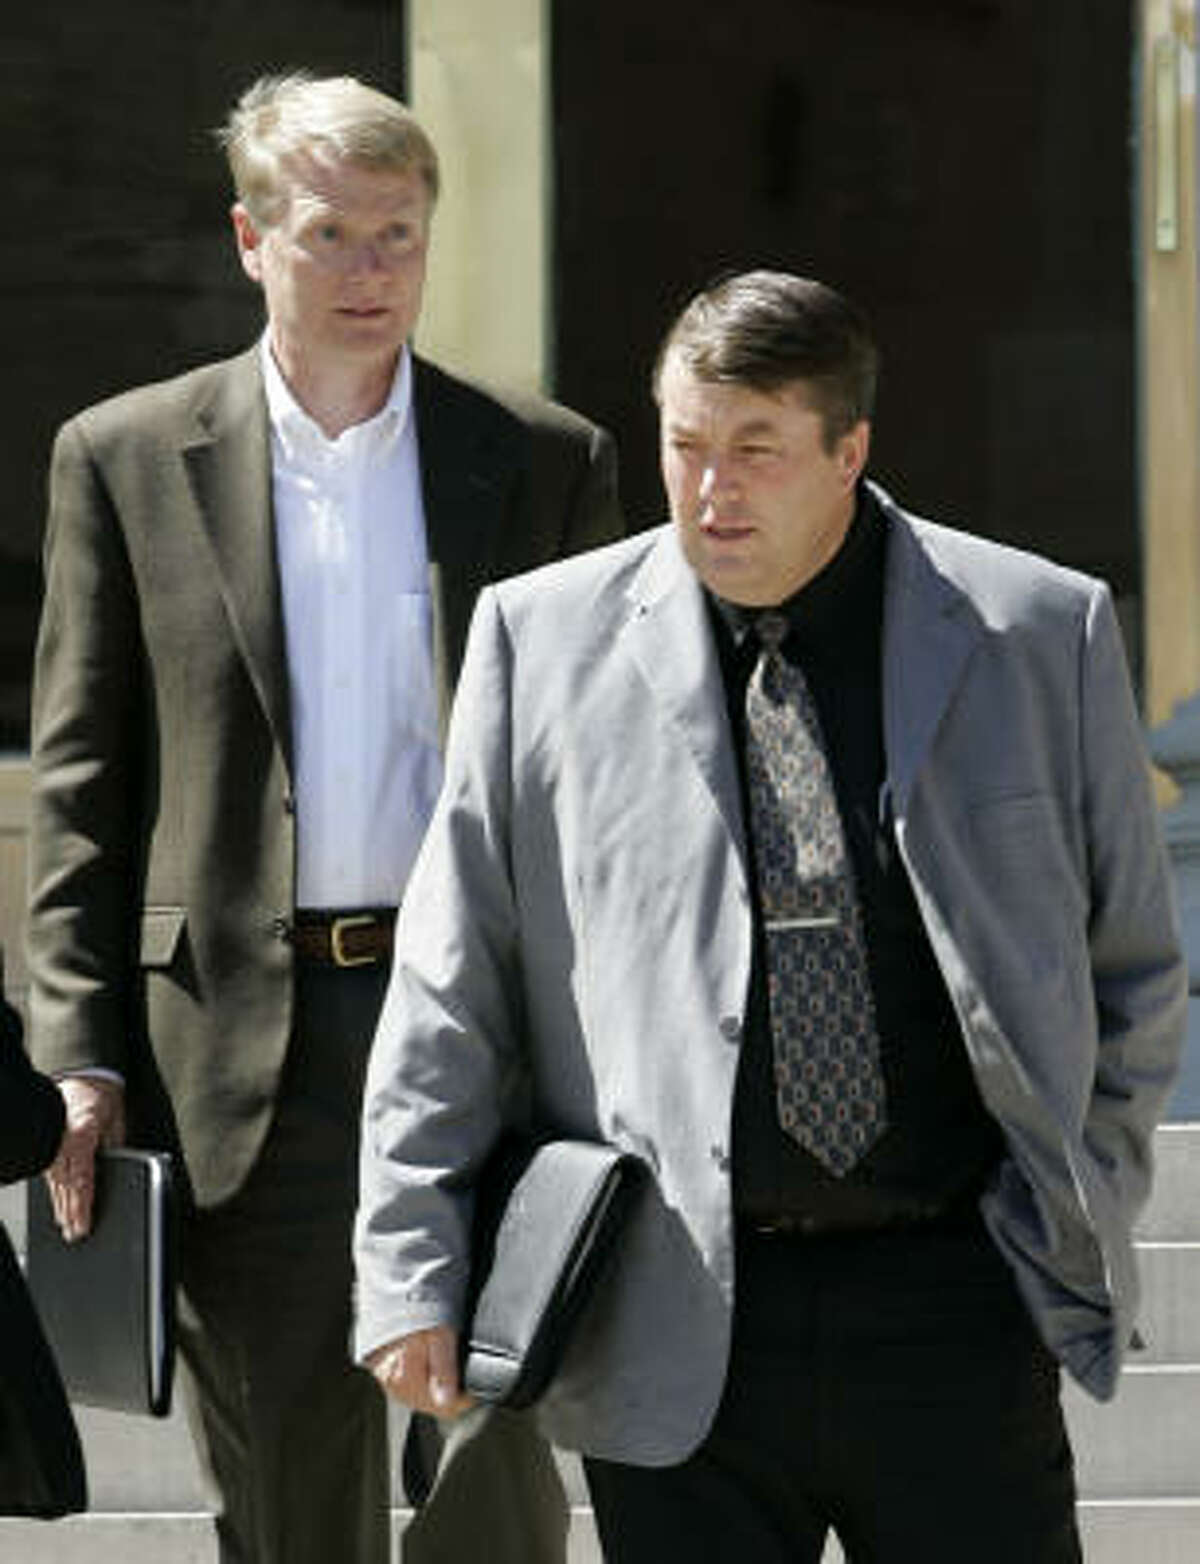 Willie Jessop, right, a leader in the Fundamentalist Church of Jesus Christ of Latter Day Saints, leaves the courthouse in San Angelo last month with Rod Parker, an FLDS spokesman.